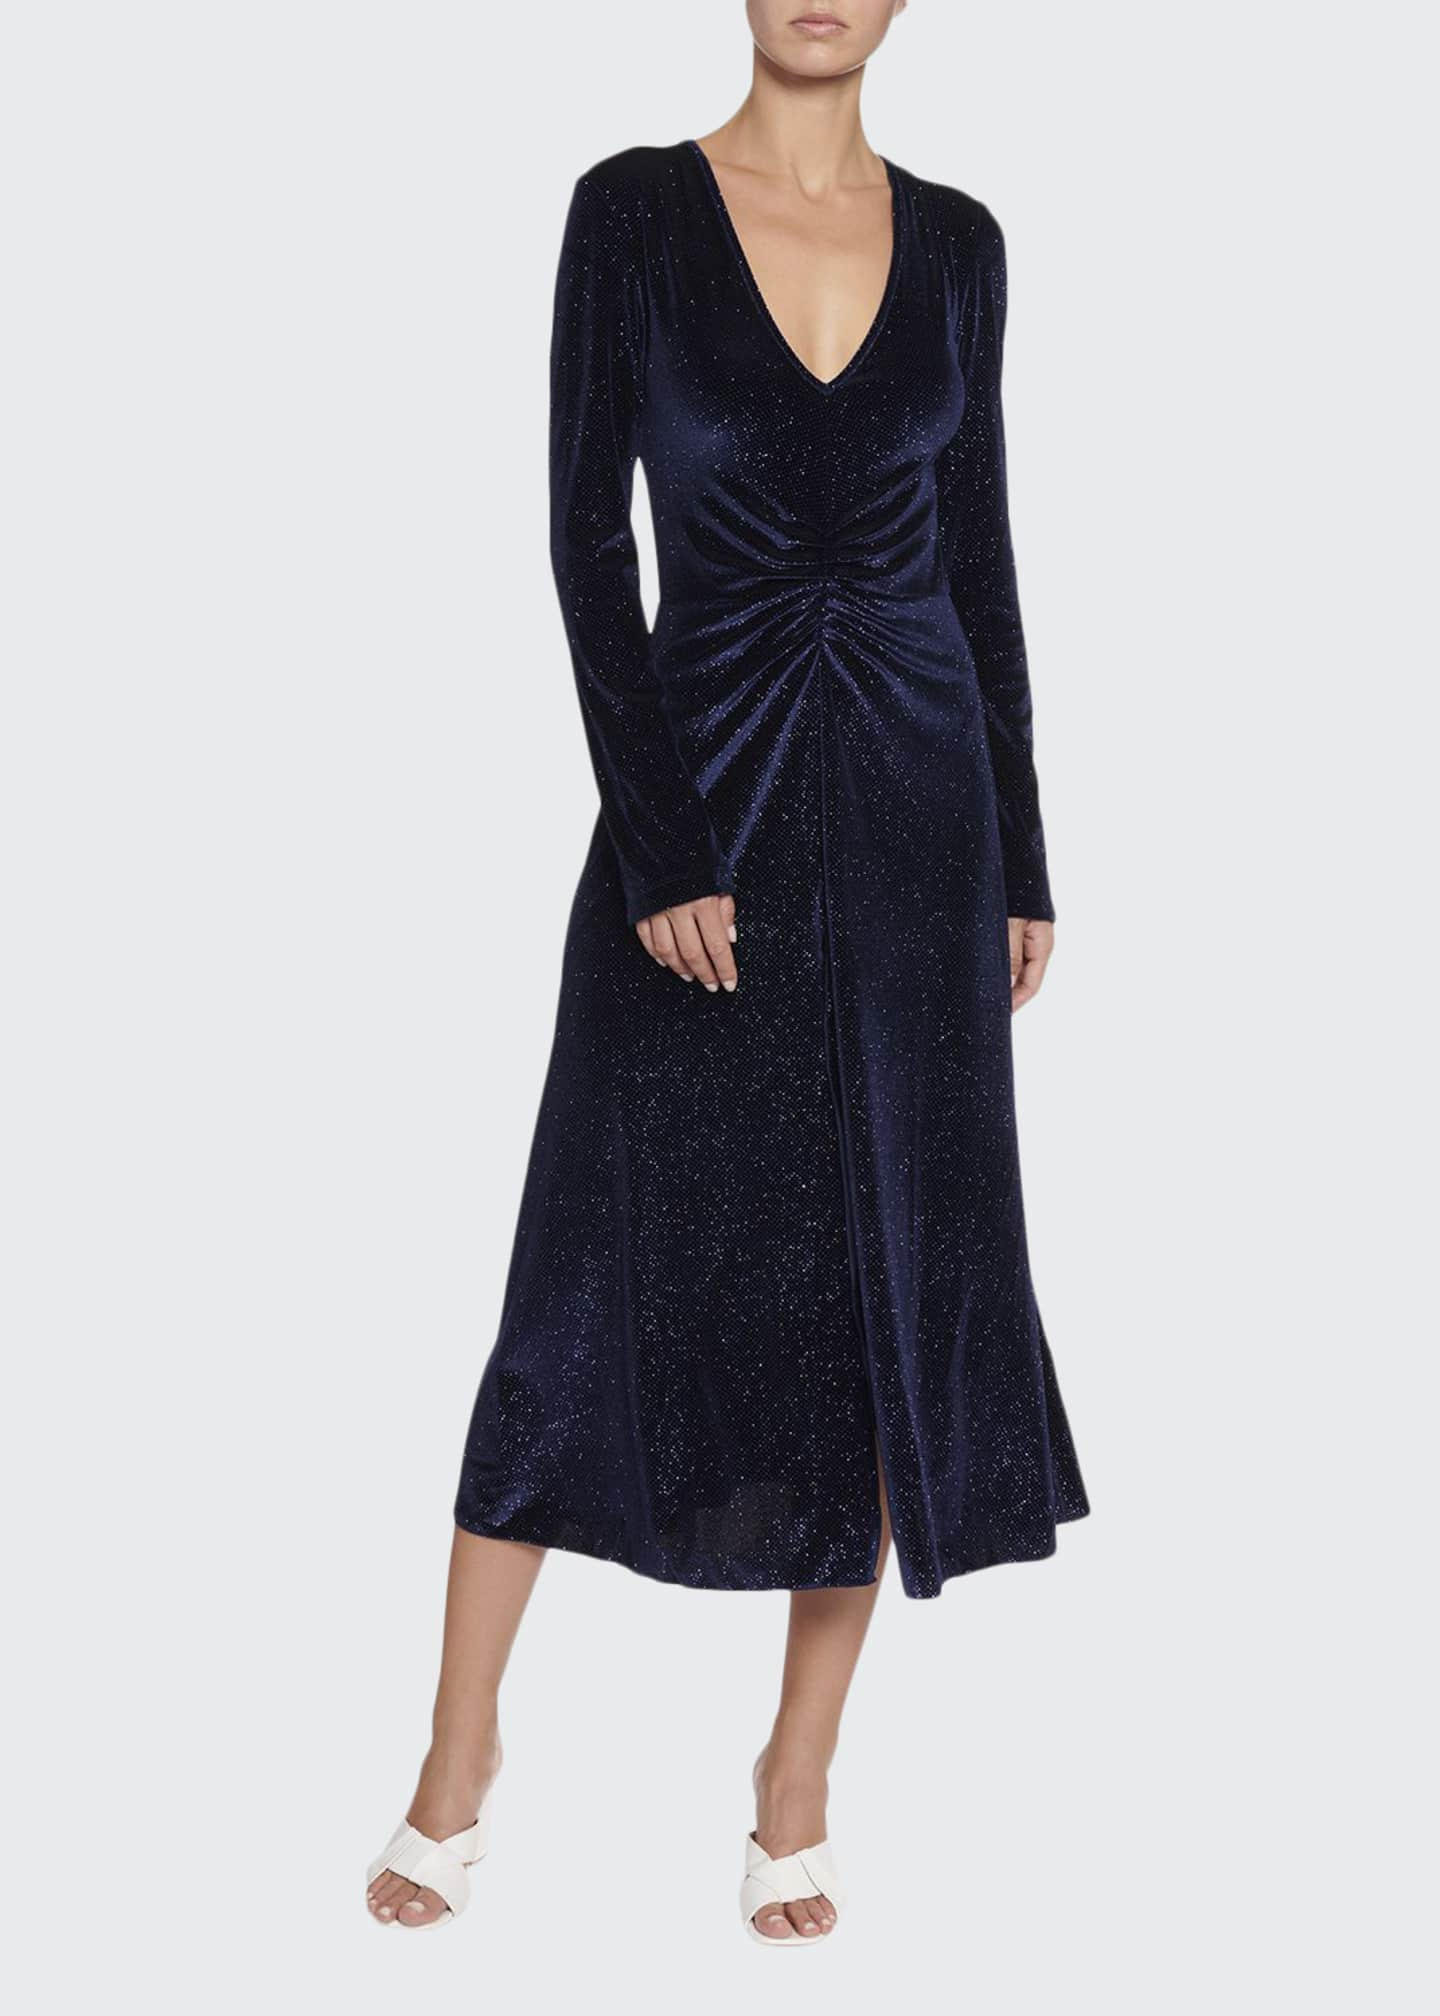 Rotate Birger Christensen Number 7 Velvet Metallic Long-Sleeve